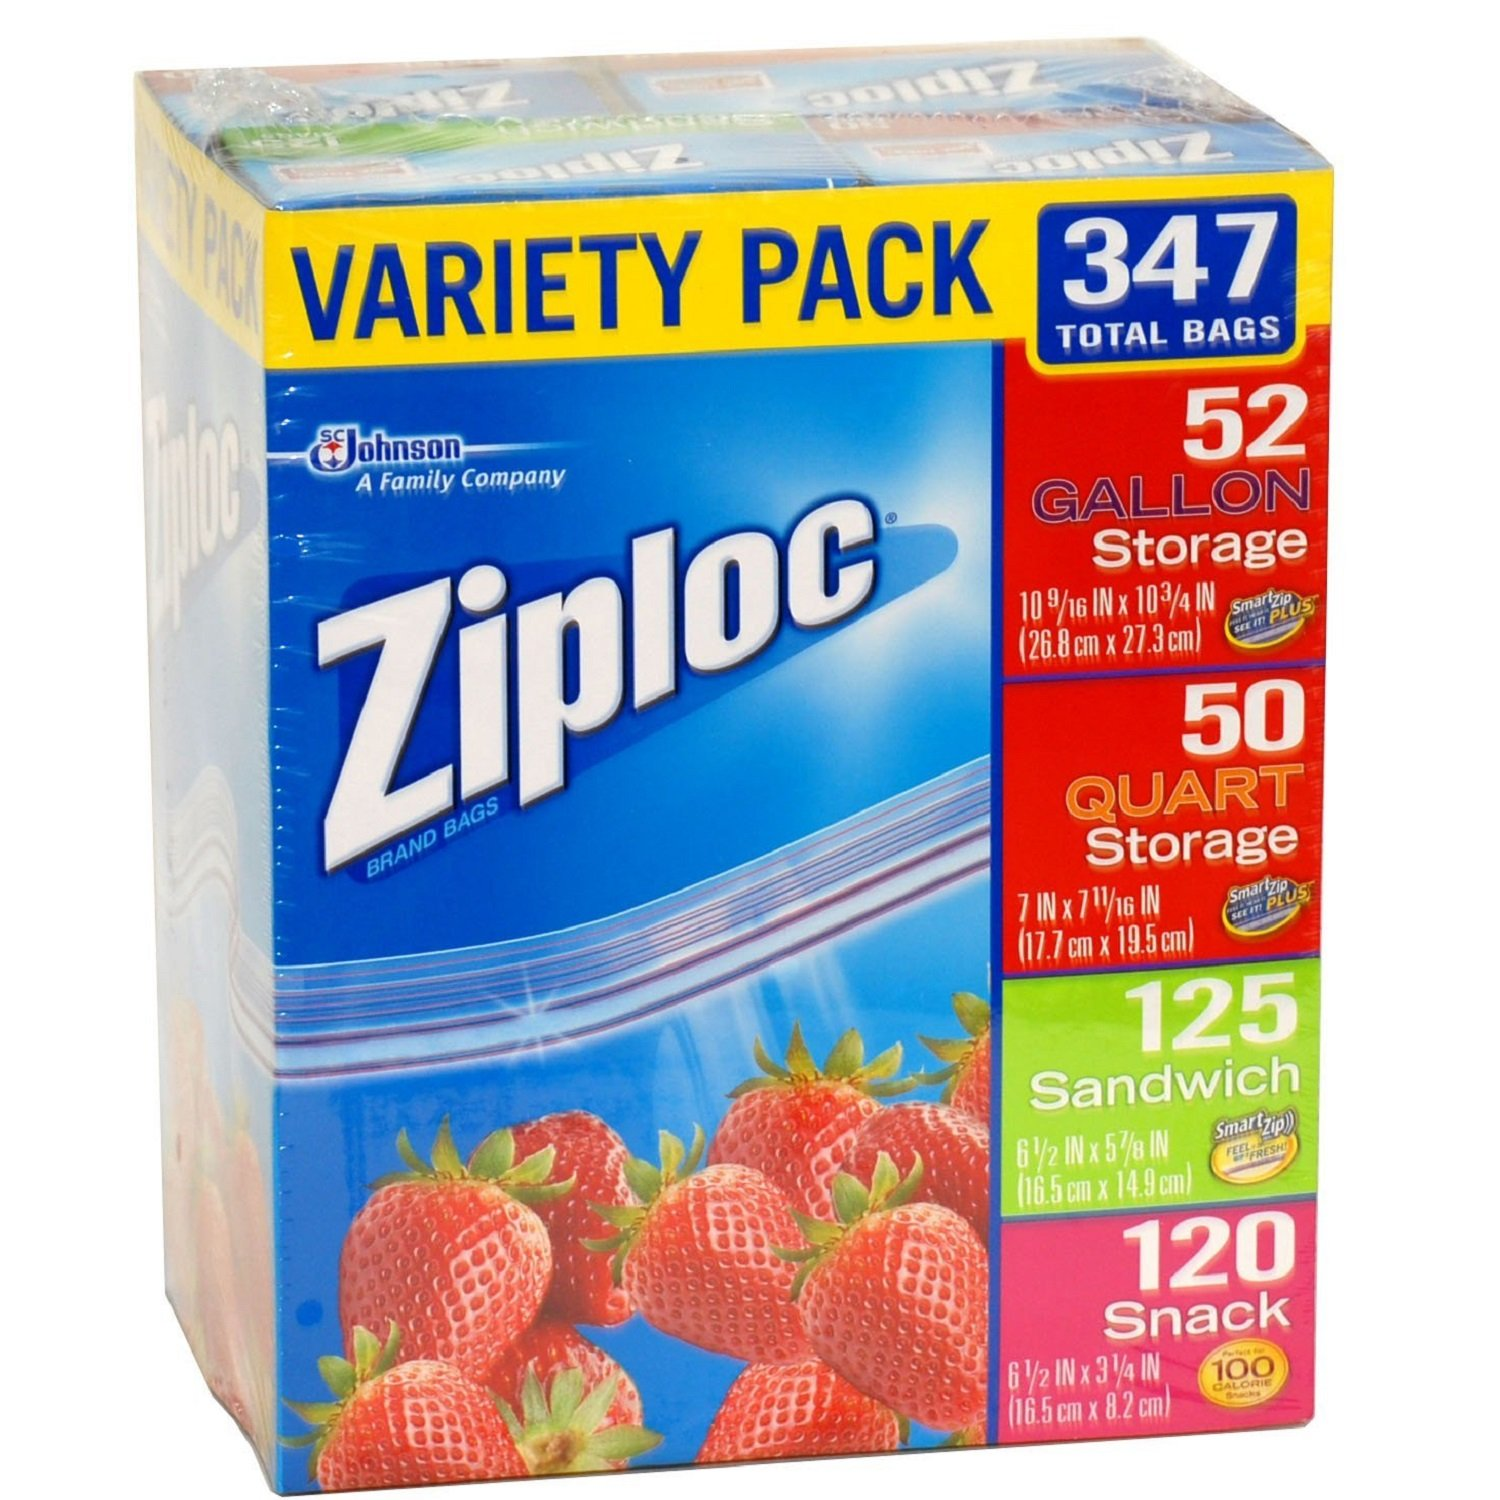 Ziploc Gallon, Quart, Sandwich, And Snack Storage Bags   Variety Pack   347 Total by Ziploc